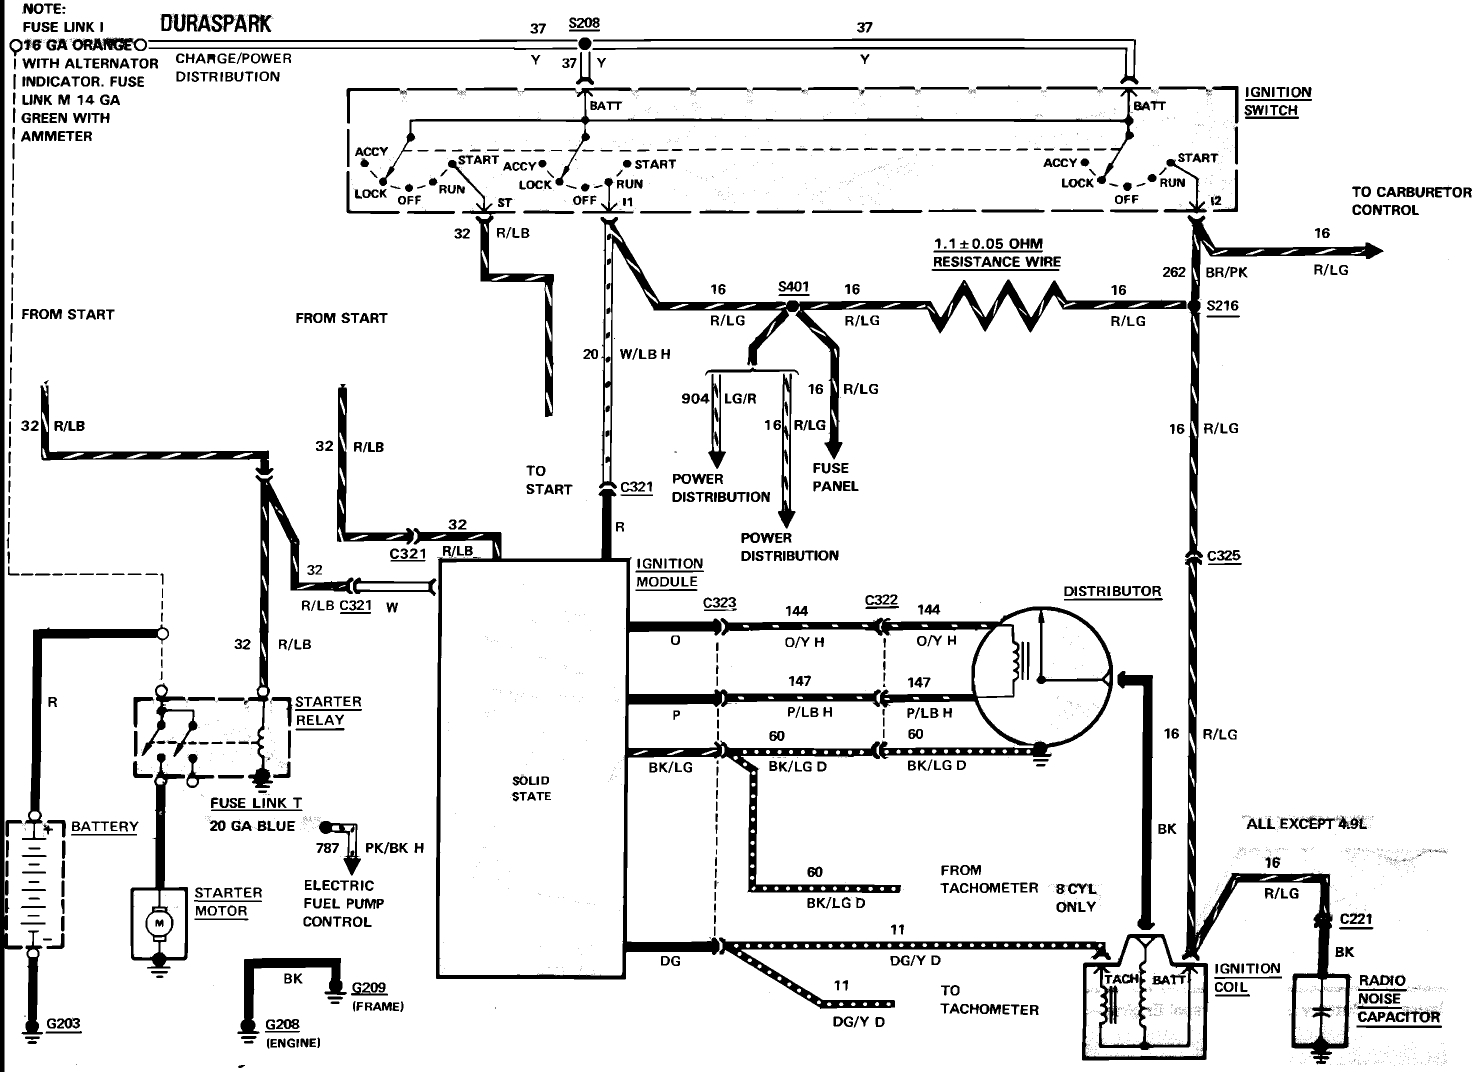 1989 ford f150 ignition wiring diagram | free wiring diagram wiring diagram for cer trailer 18 free schematic and wiring diagram for f250 trailer